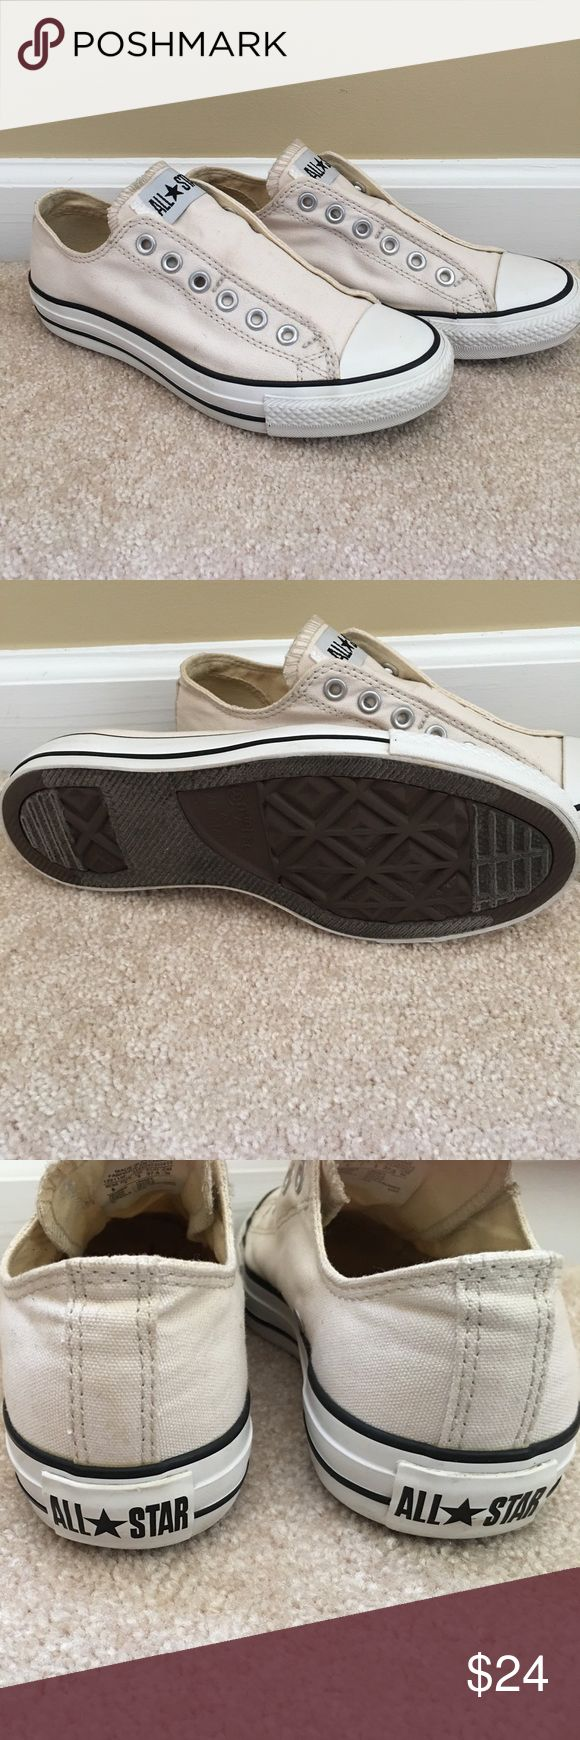 Converse sneakers. Good condition. Off white Converse sneaks. Worn a few times. In good condition. Soles very clean. Converse Shoes Sneakers